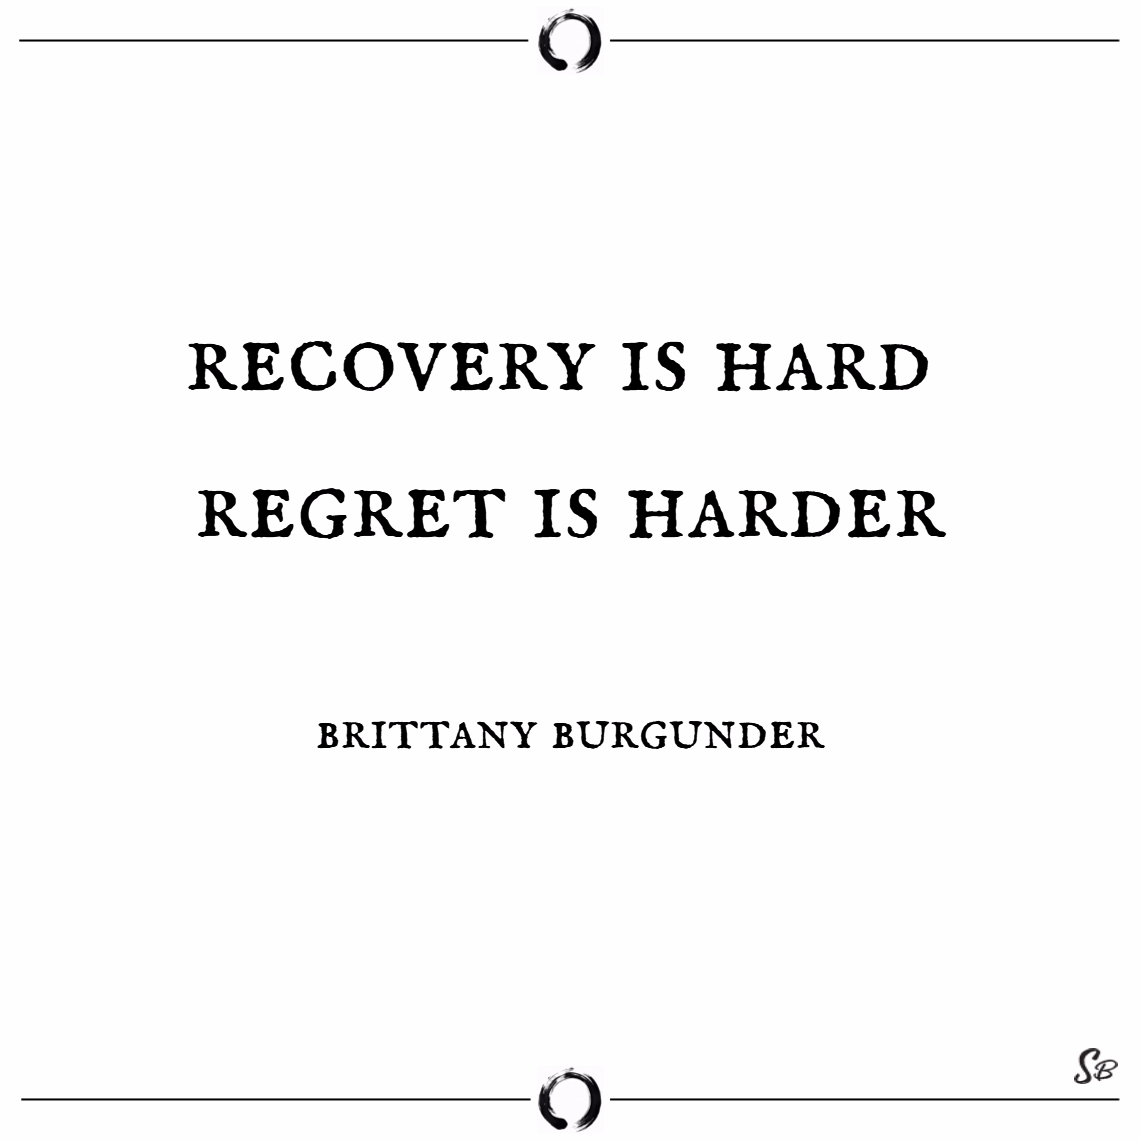 Recovery is hard. regret is harder. – brittany burgunder